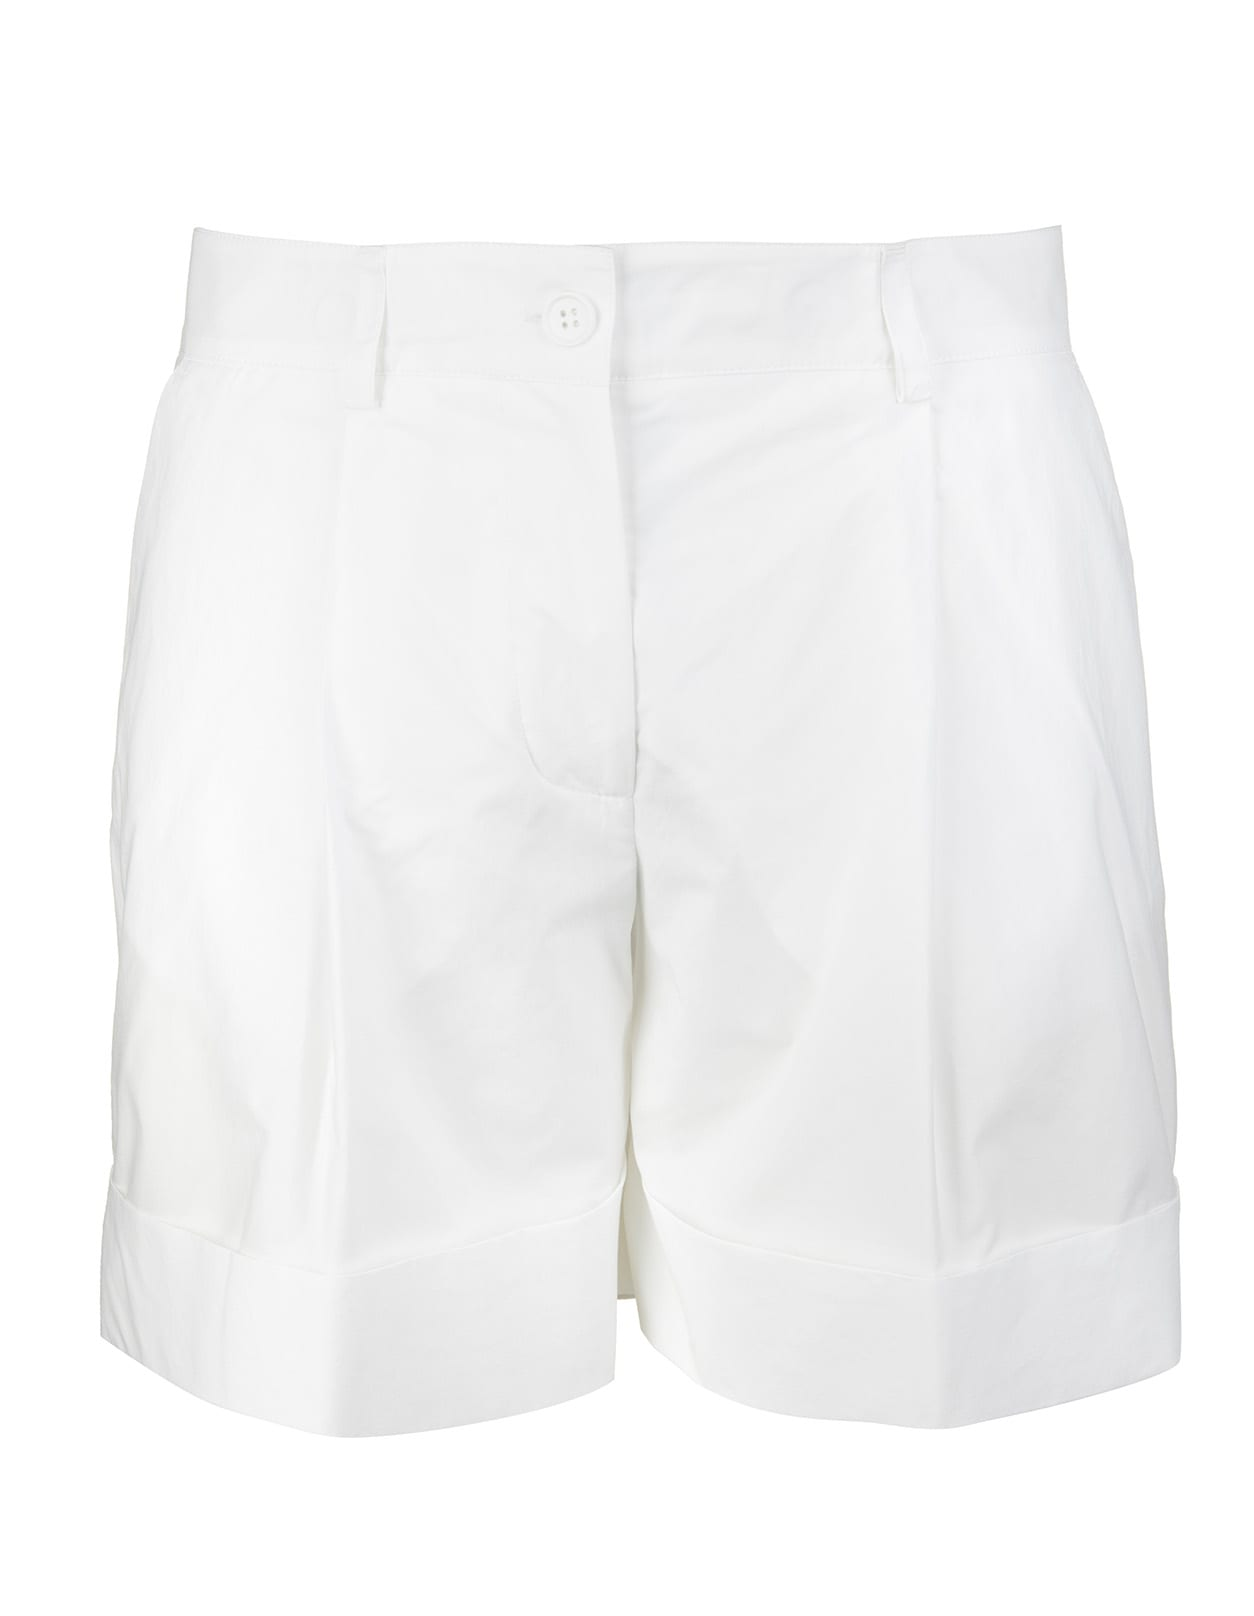 P.a.r.o.s.h. TAILORED SHORTS